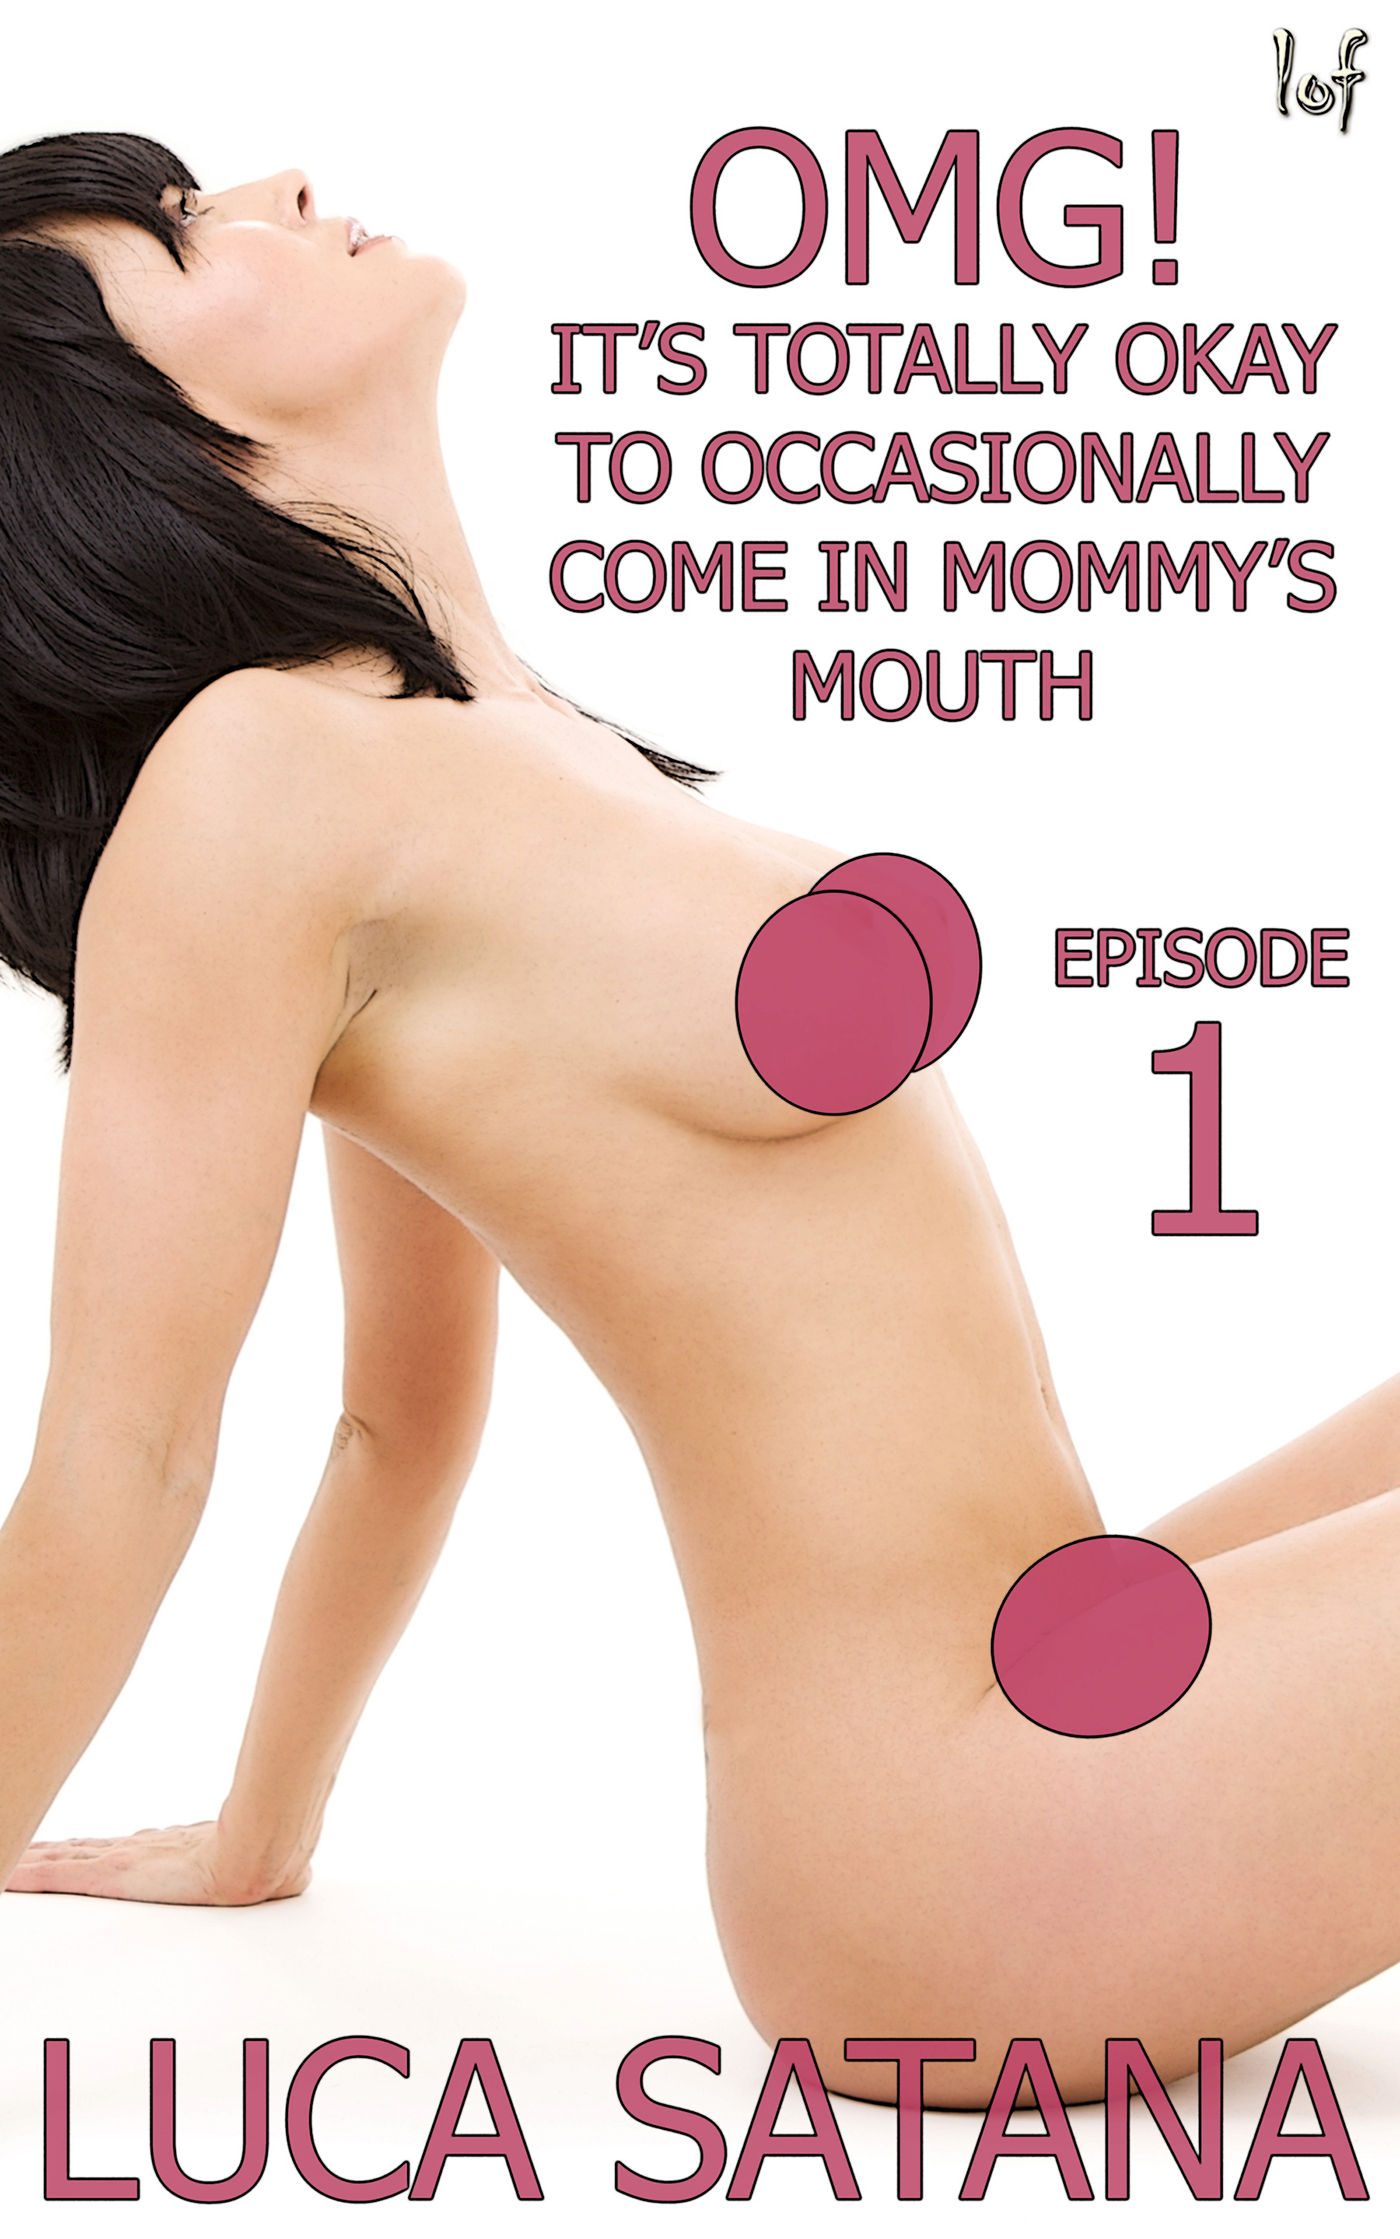 LOF New Release: OMG! It's Totally Okay To Occasionally Come In Mommy's Mouth: Episode 1